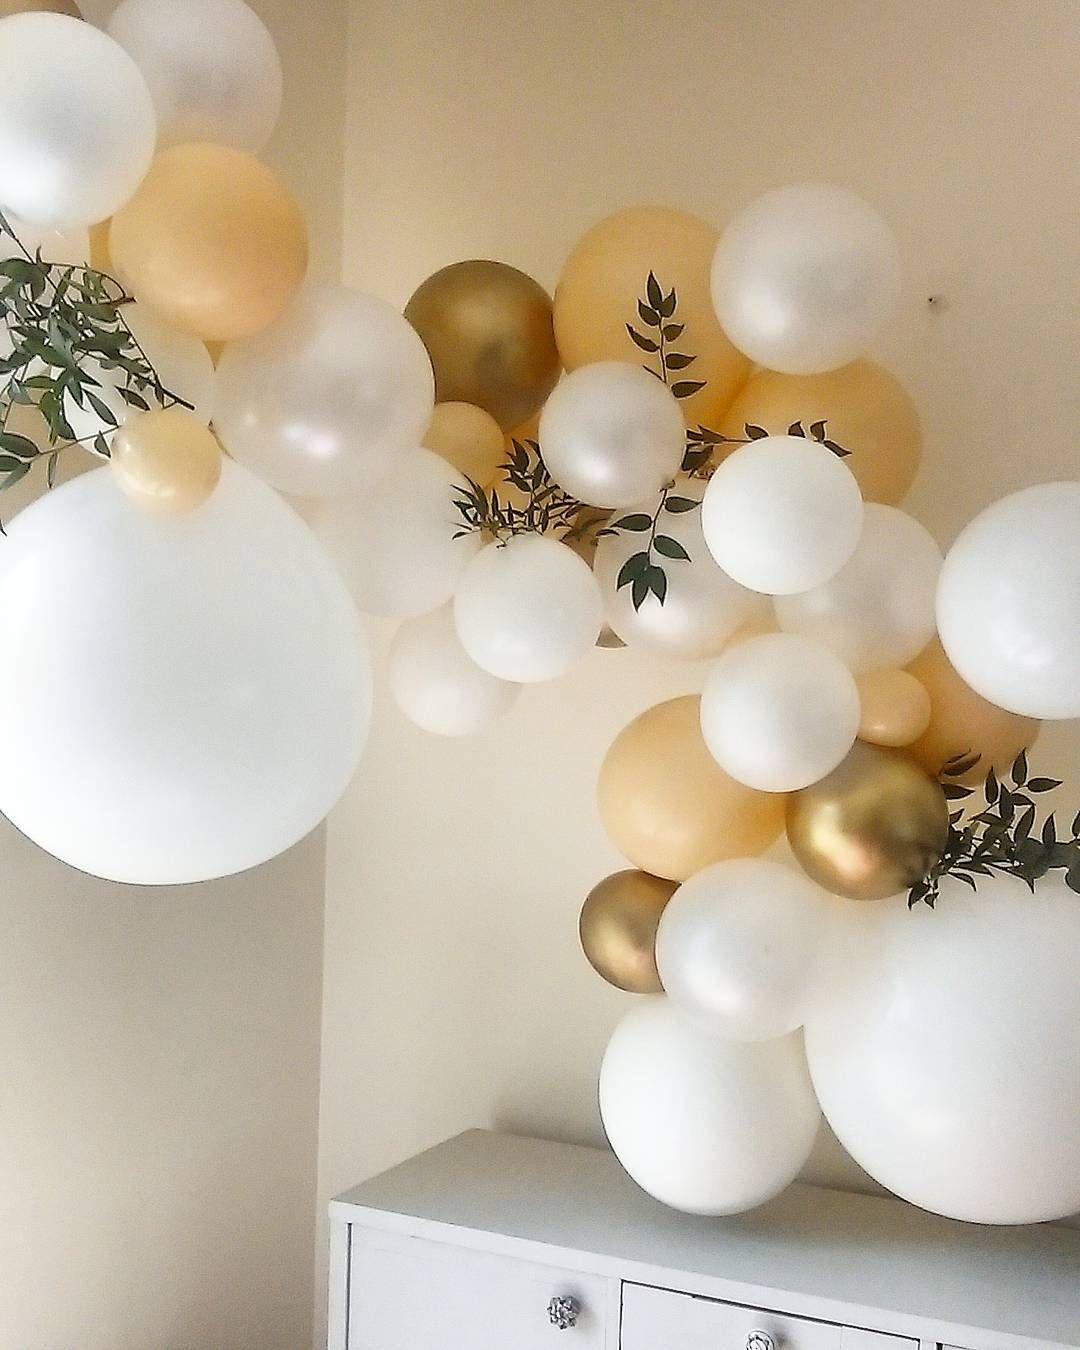 Organic balloon arch making a huge statement with metallic